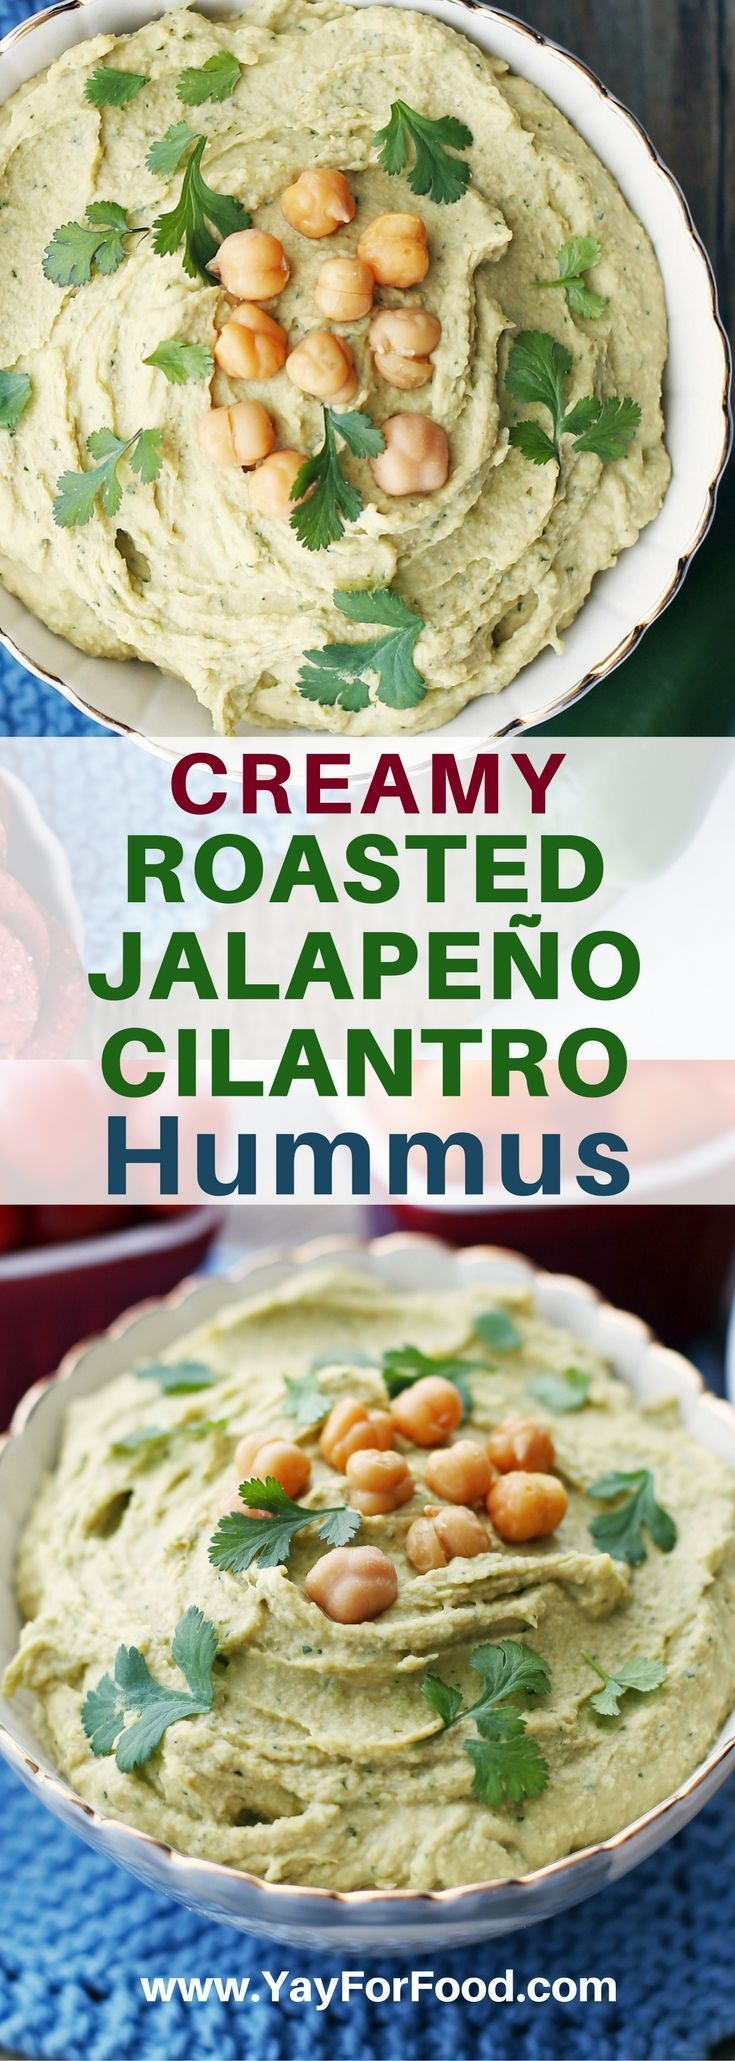 Delicious and creamy! Try this easy homemade spicy jalapeño and cilantro hummus! Perfect as a dip for vegetables and crackers or as a condiment in wraps and sandwiches.